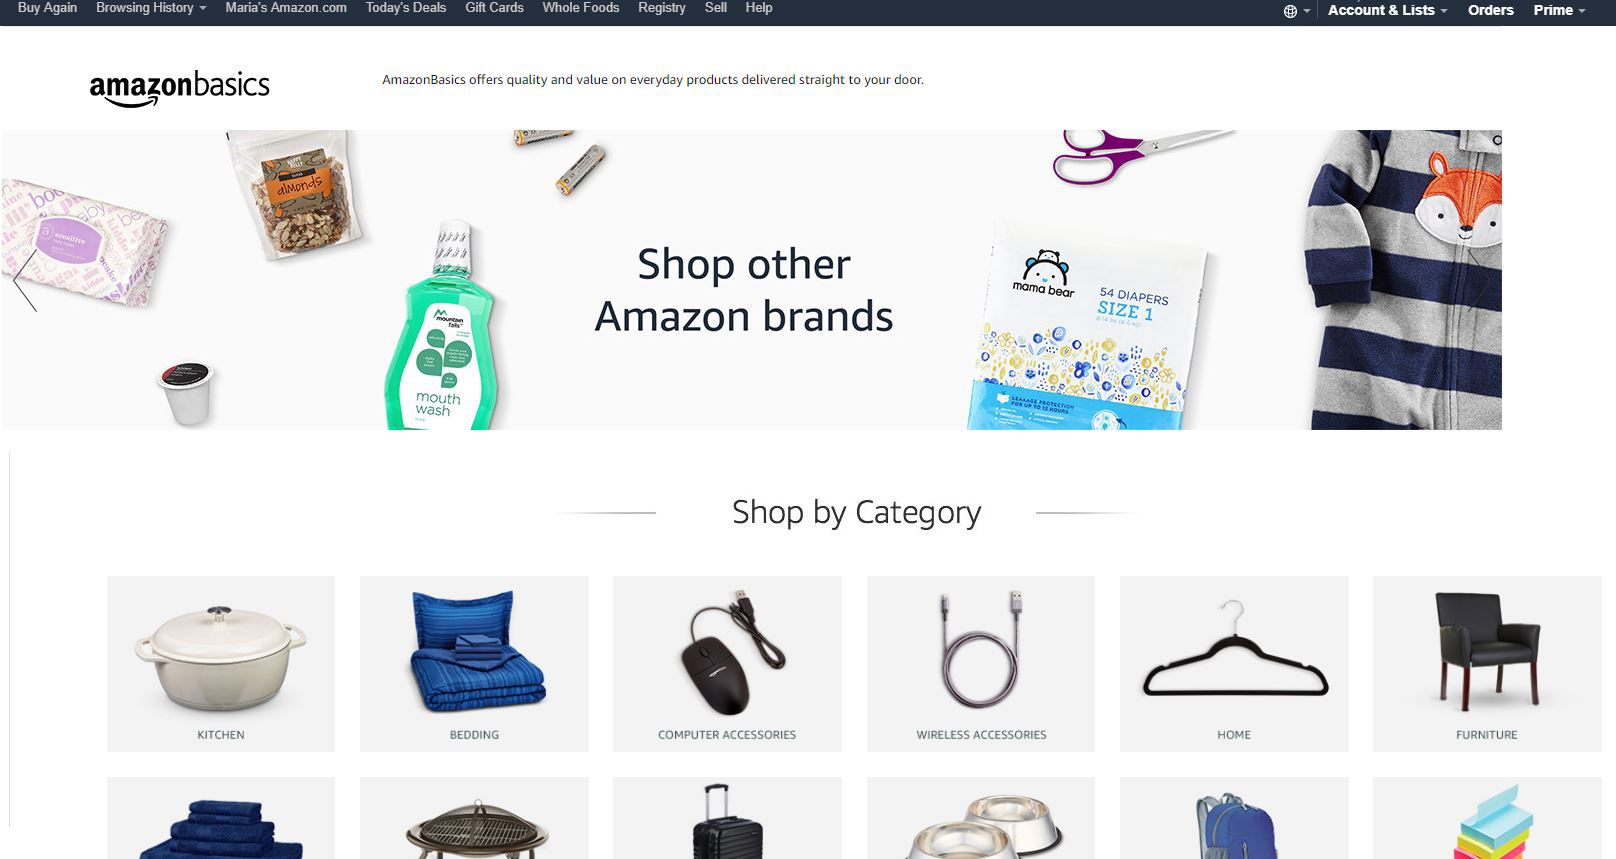 Amazon's own private label brands are sold across several categories.